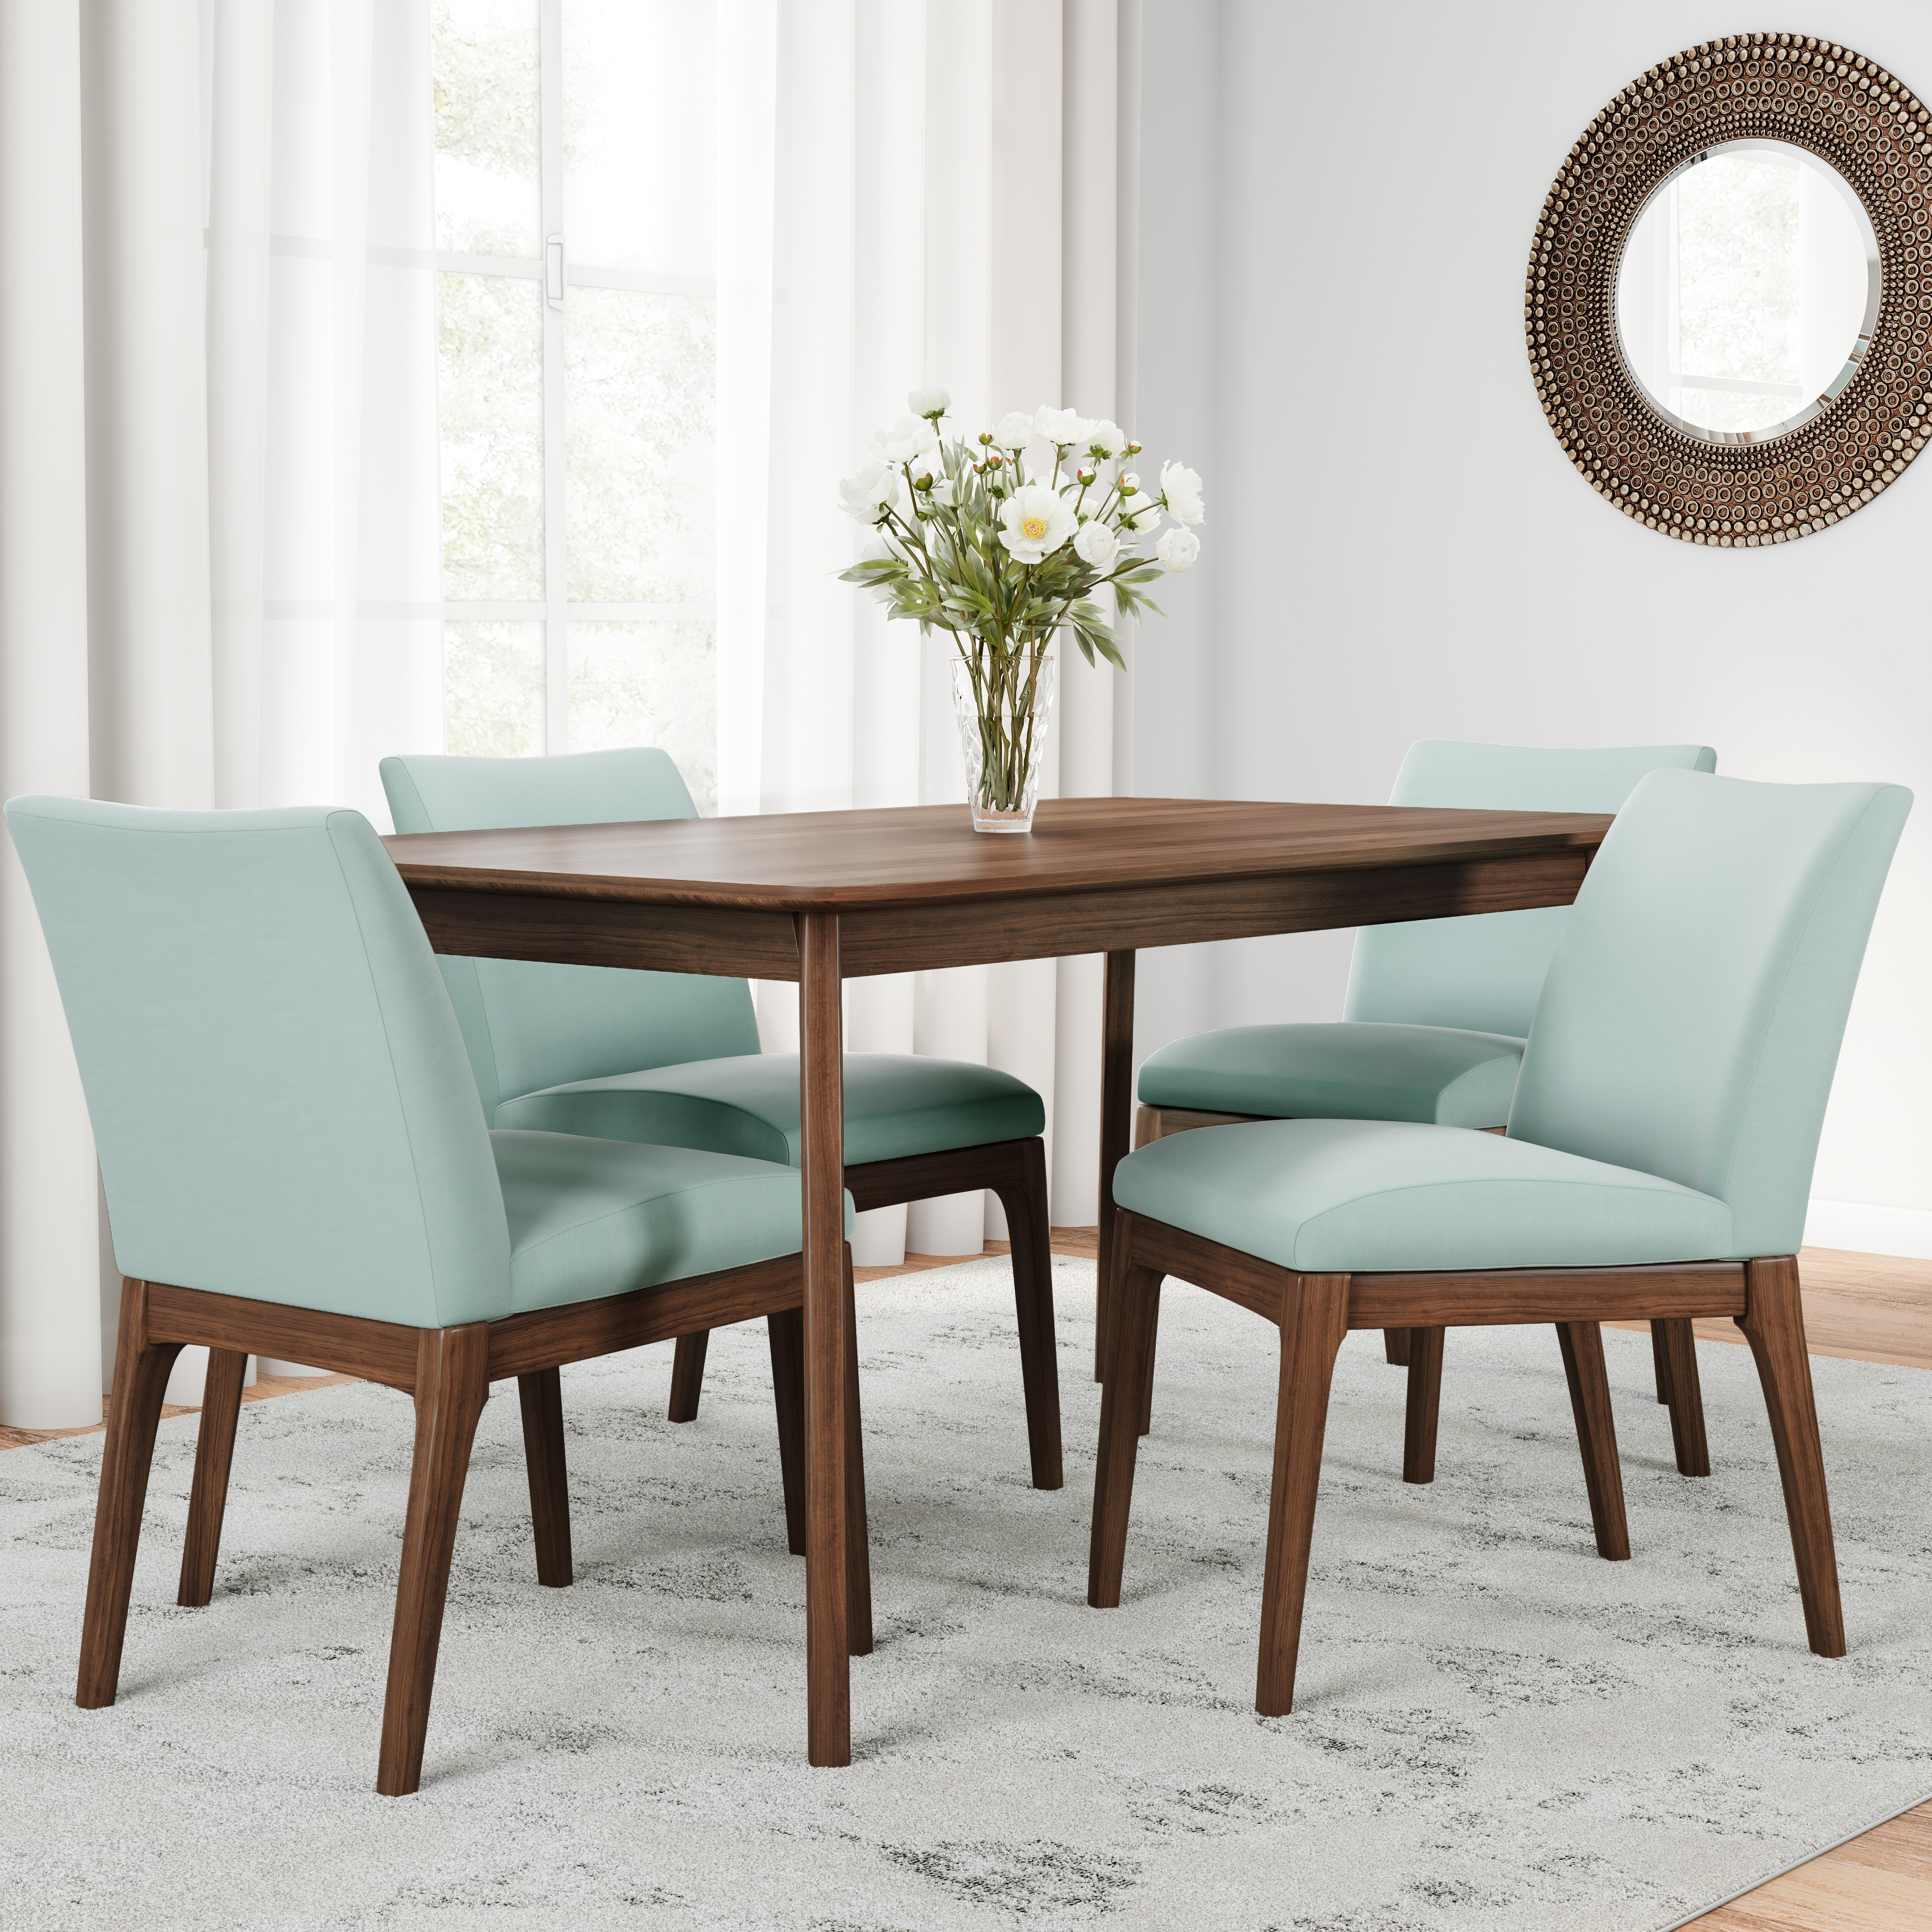 Carson Carrington Kotka Mid-century 5-piece Dining Set & Buy Kitchen \u0026 Dining Room Sets Online at Overstock | Our Best Dining ...